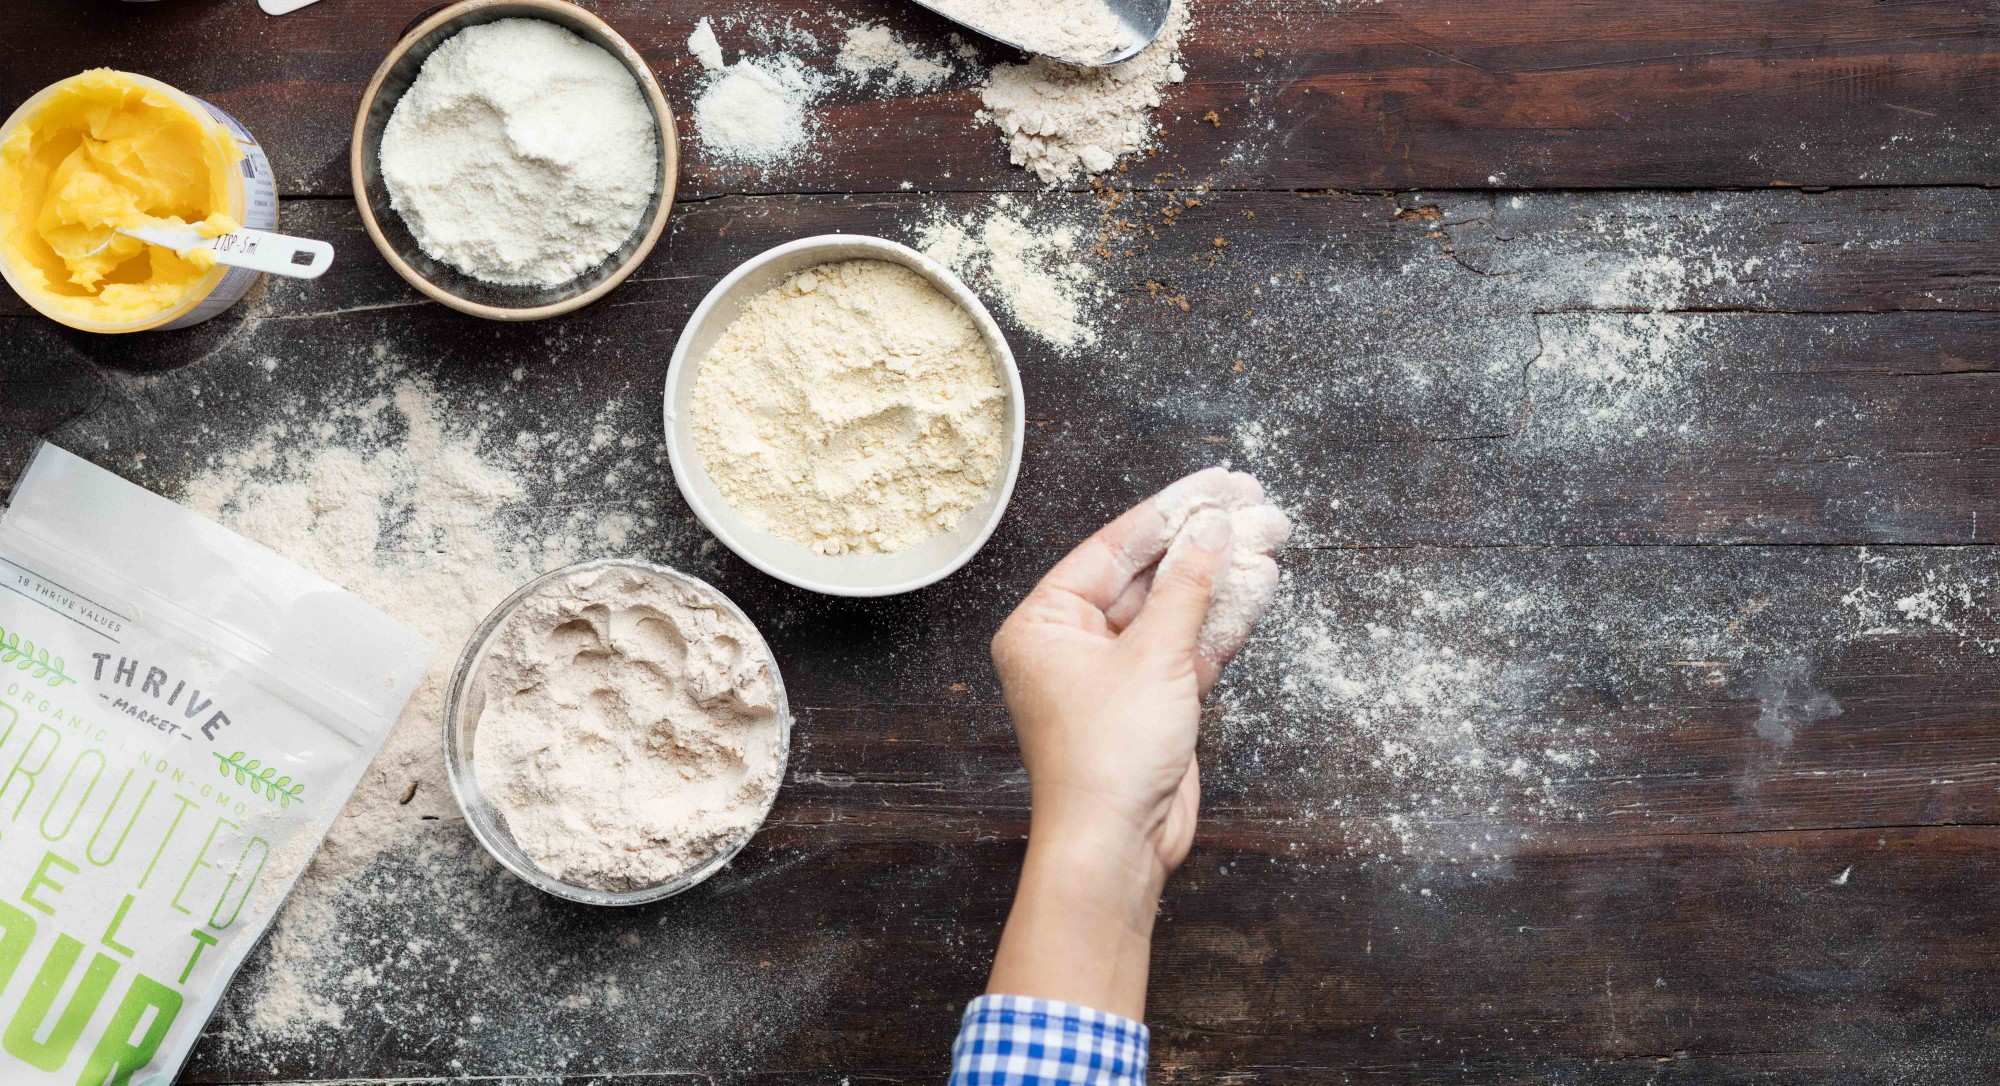 Ask a Chef: How Do I Bake With Sprouted Flours?